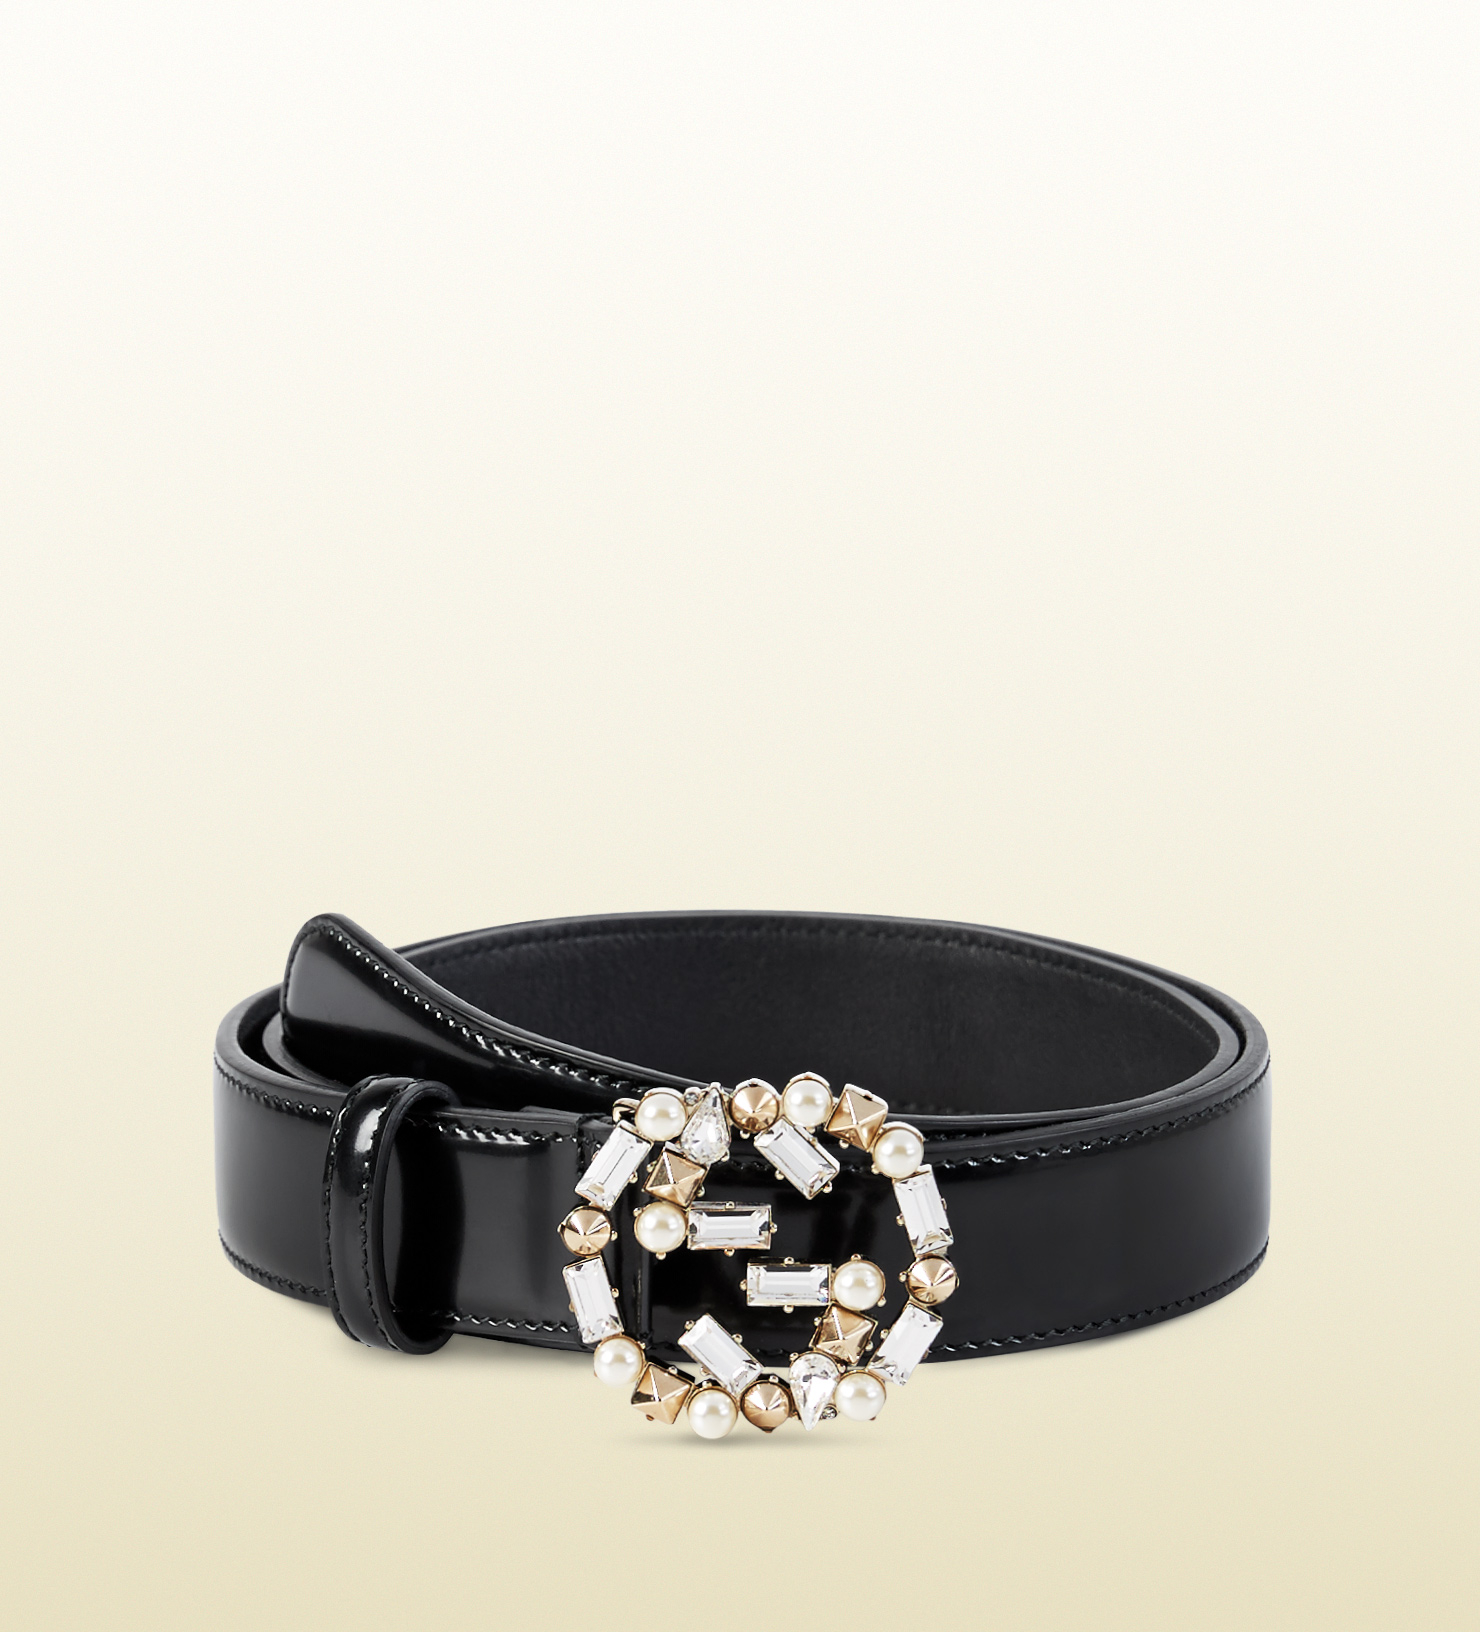 Gucci Leather Belt With Pearl And Crystal Interlocking G ...